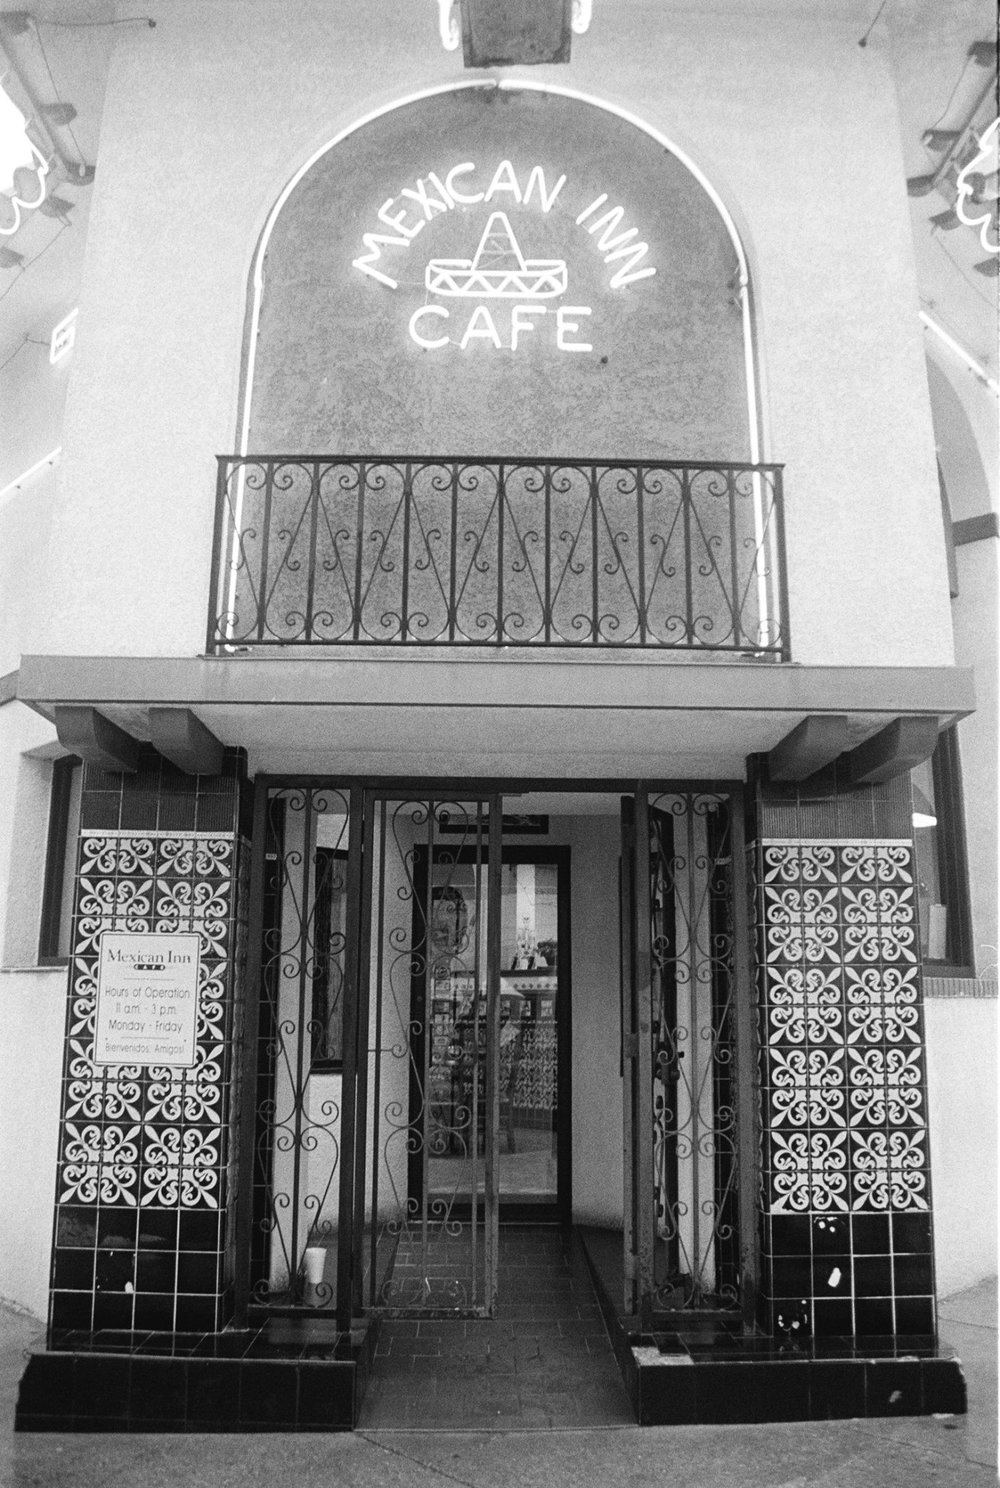 Mexican Inn Cafe - 1 of 43 (10).jpg